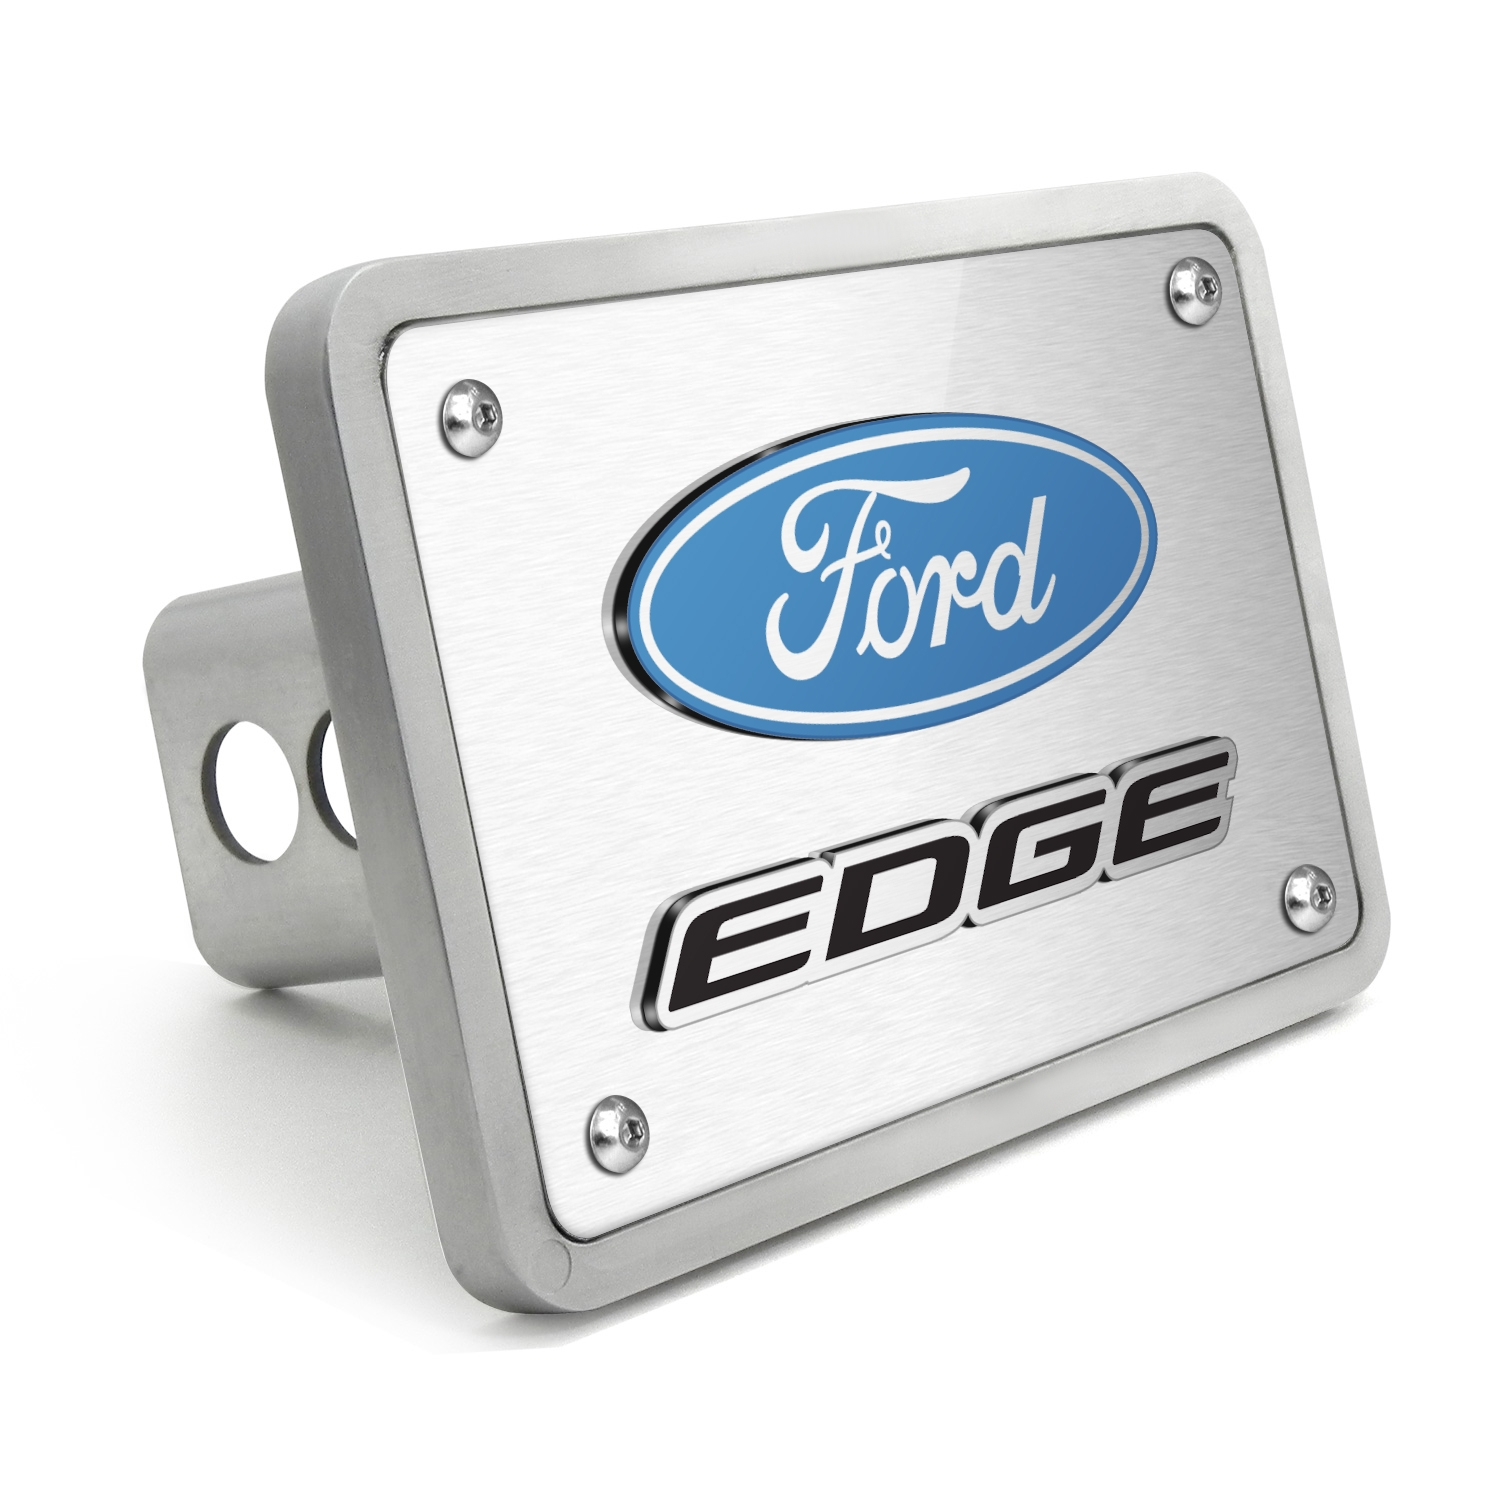 """Ford Edge 3D Logo Brushed 3/8"""" thick Billet Aluminum 2 inch Tow Hitch Cover"""